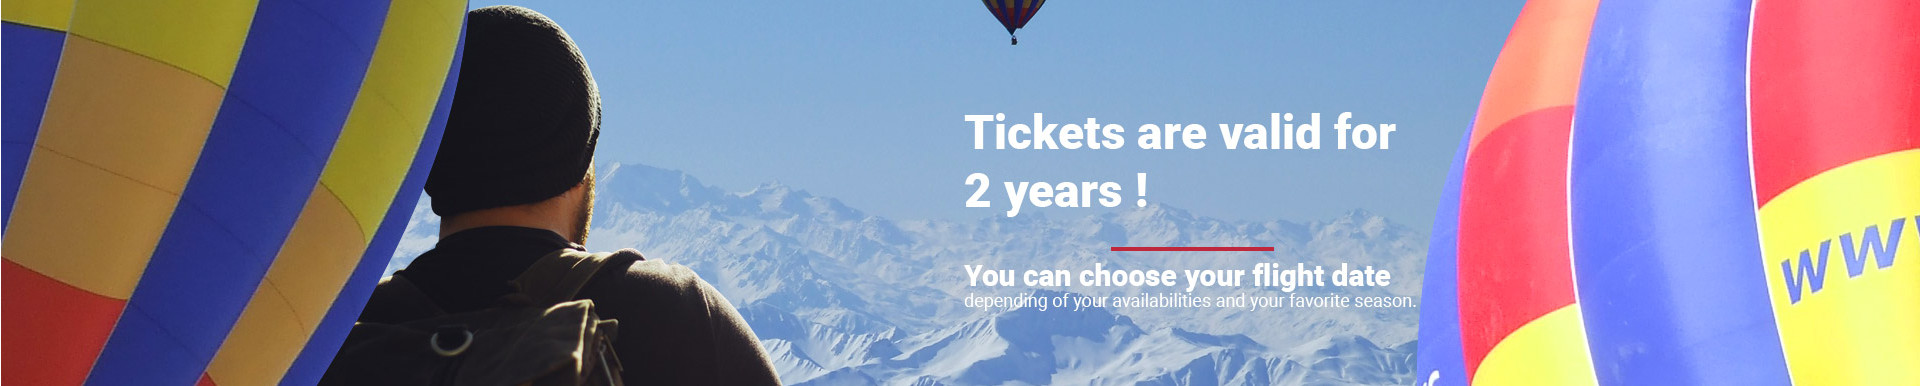 Tickets are valid for 2 years !